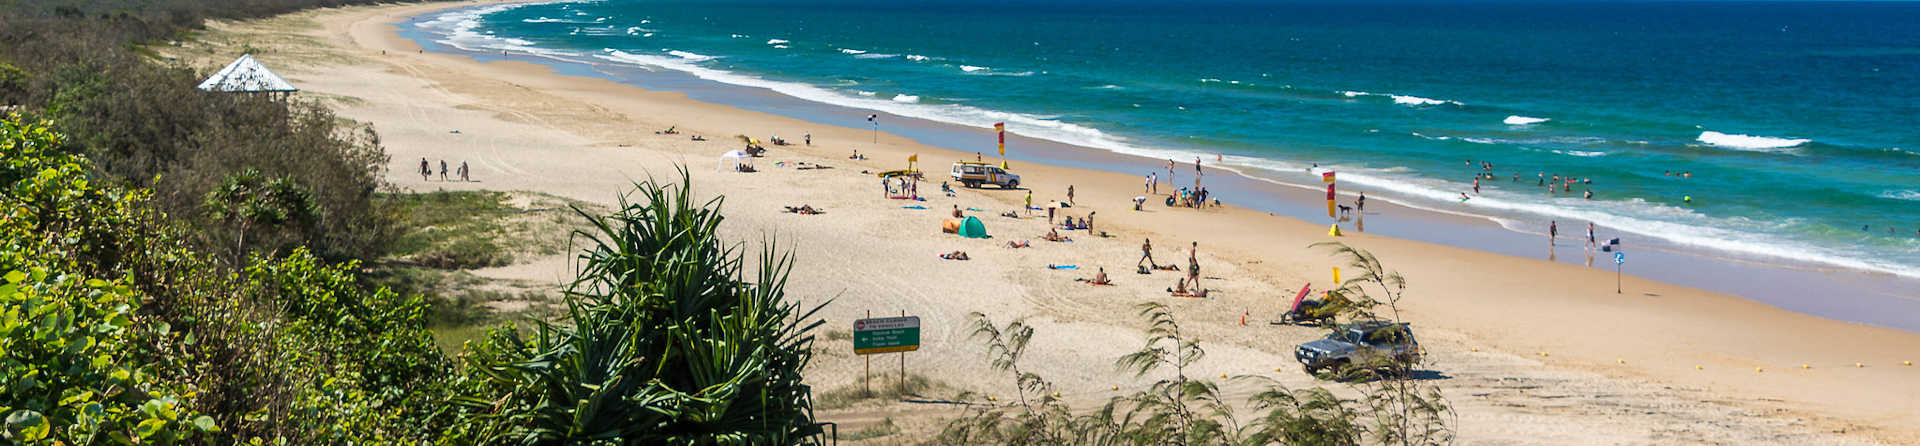 What is at Rainbow Beach?